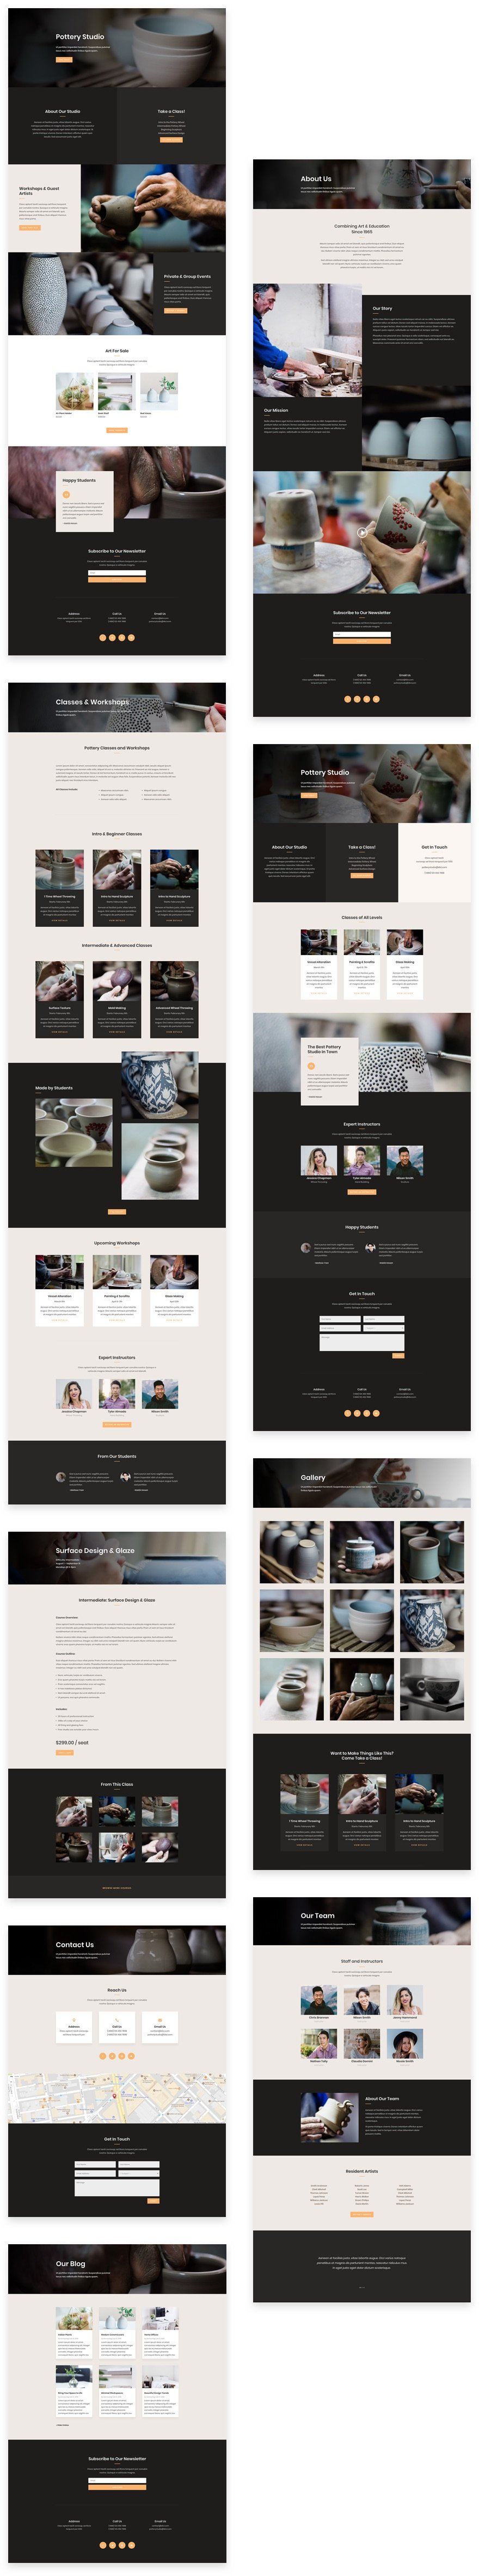 get a beautifully polished pottery studio layout pack for divi